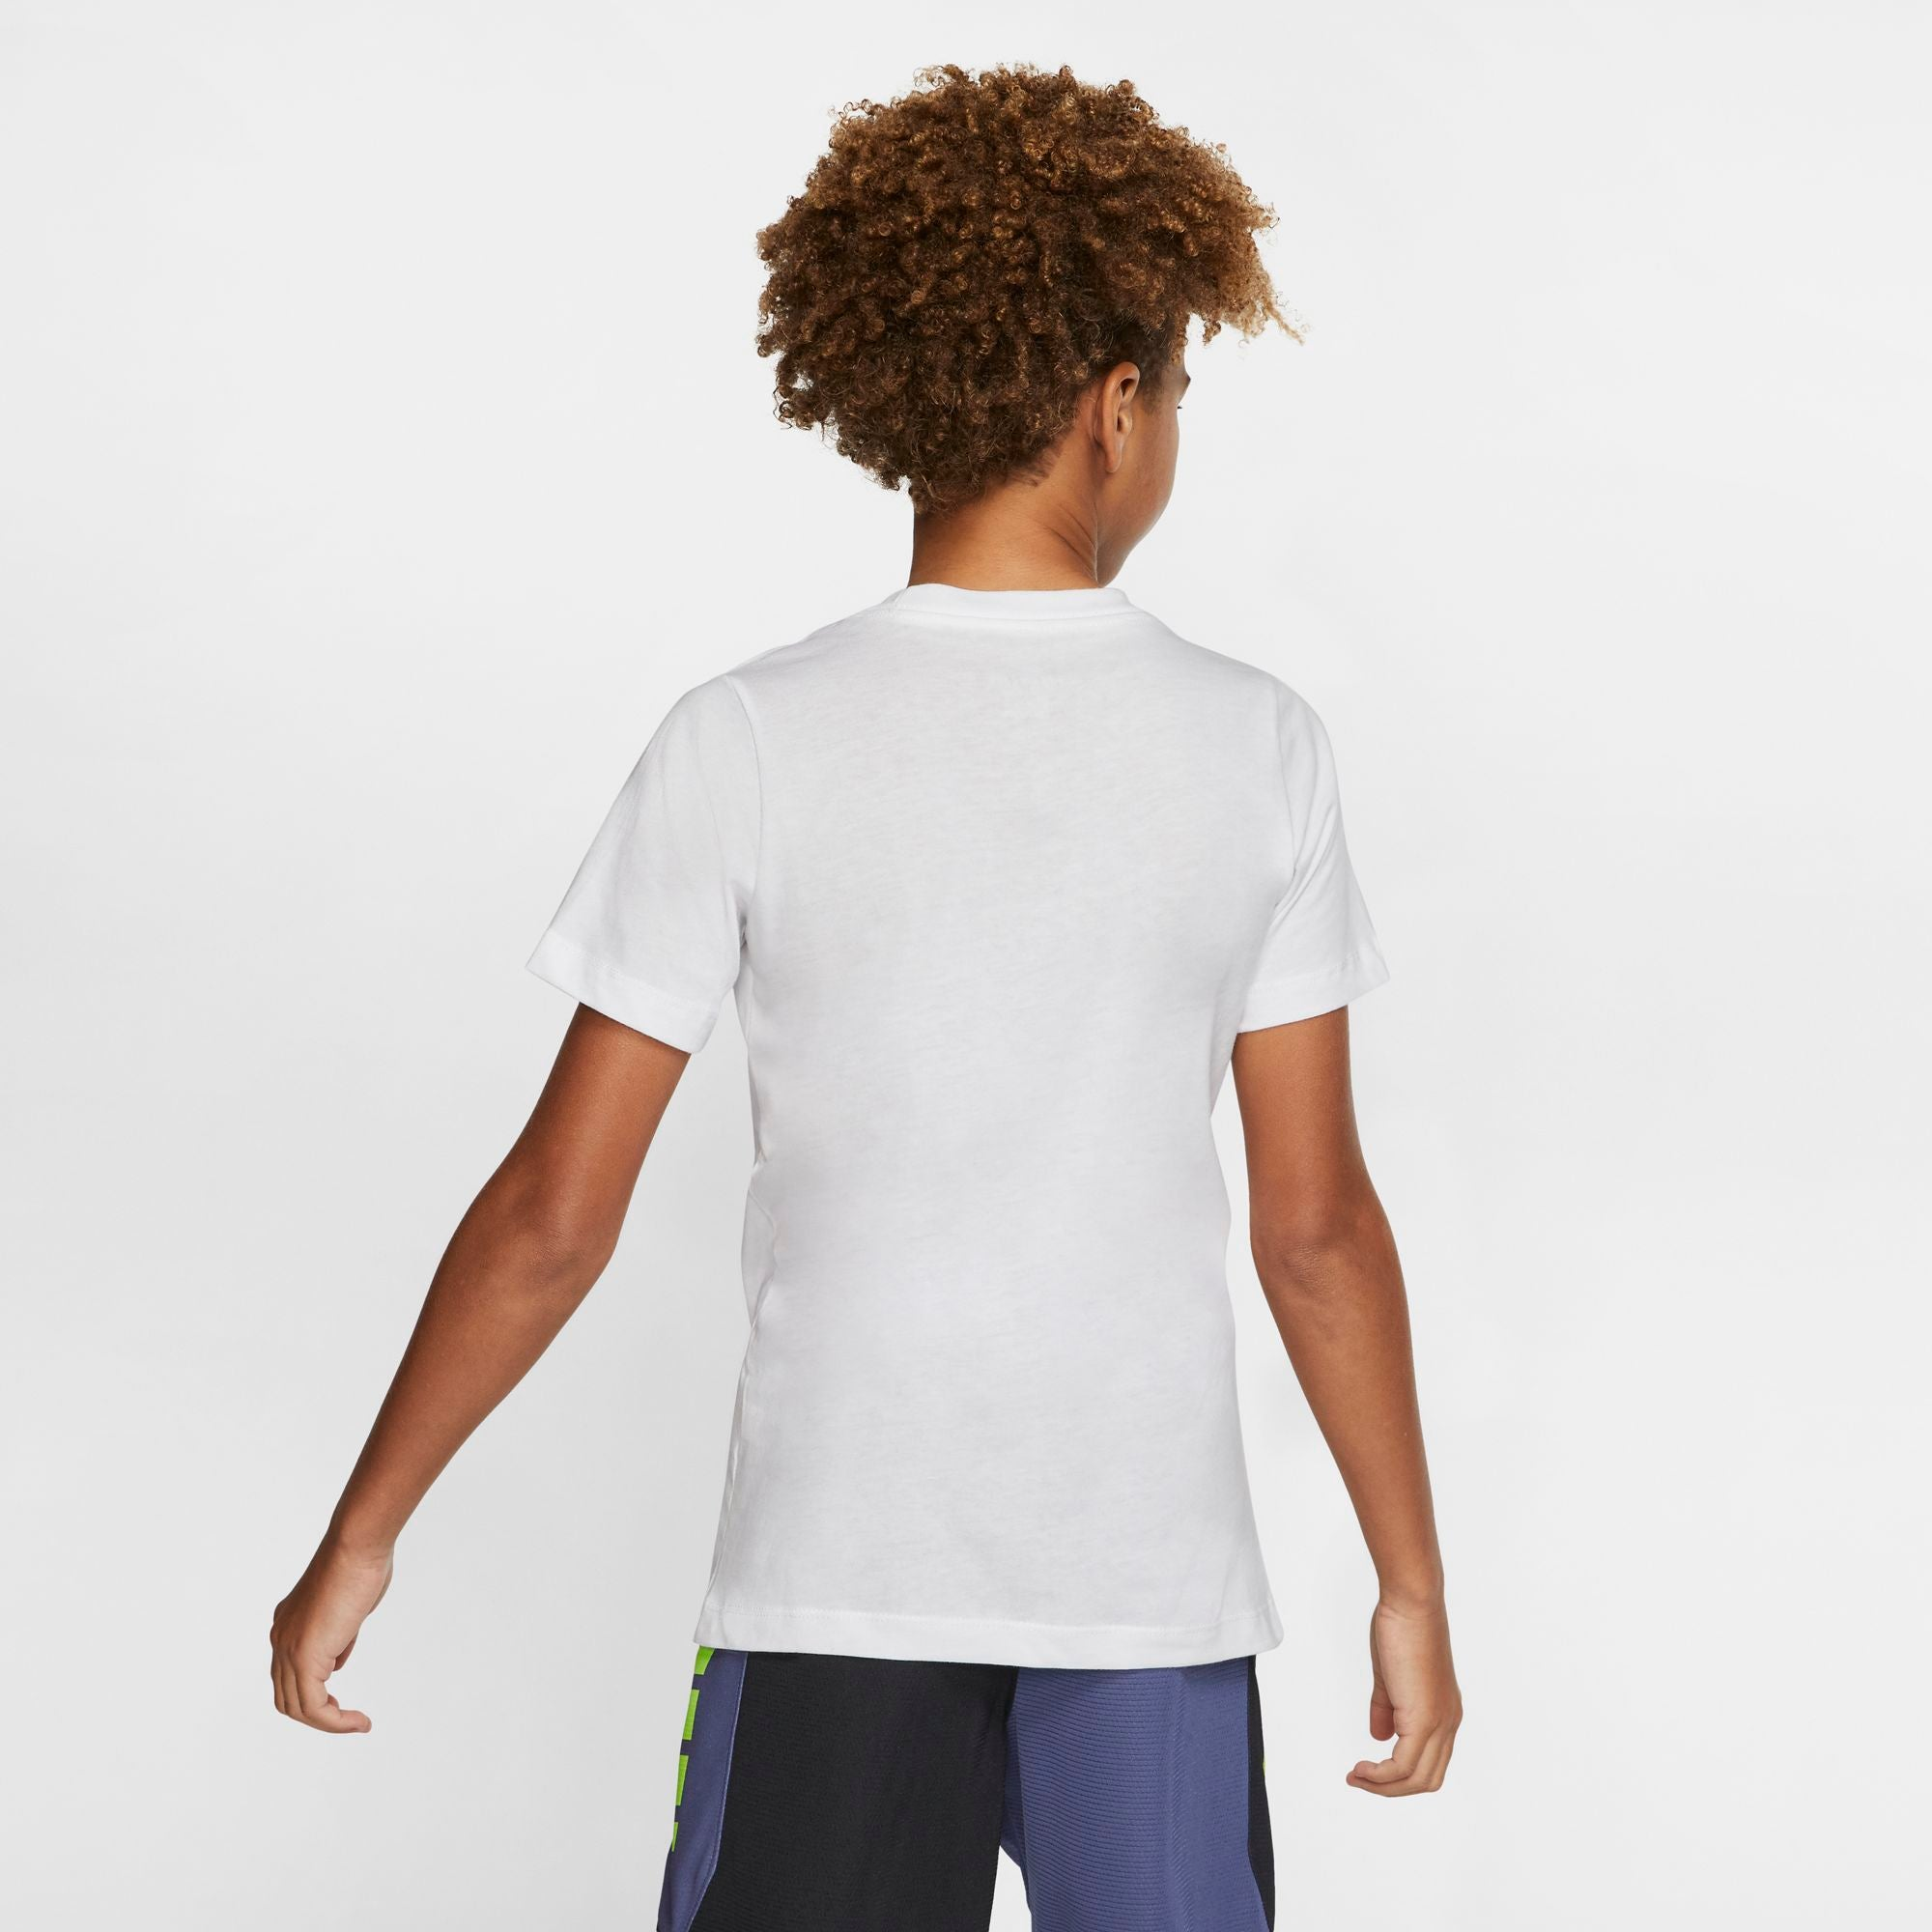 Nike Kids Sportswear Graphic Tee - White